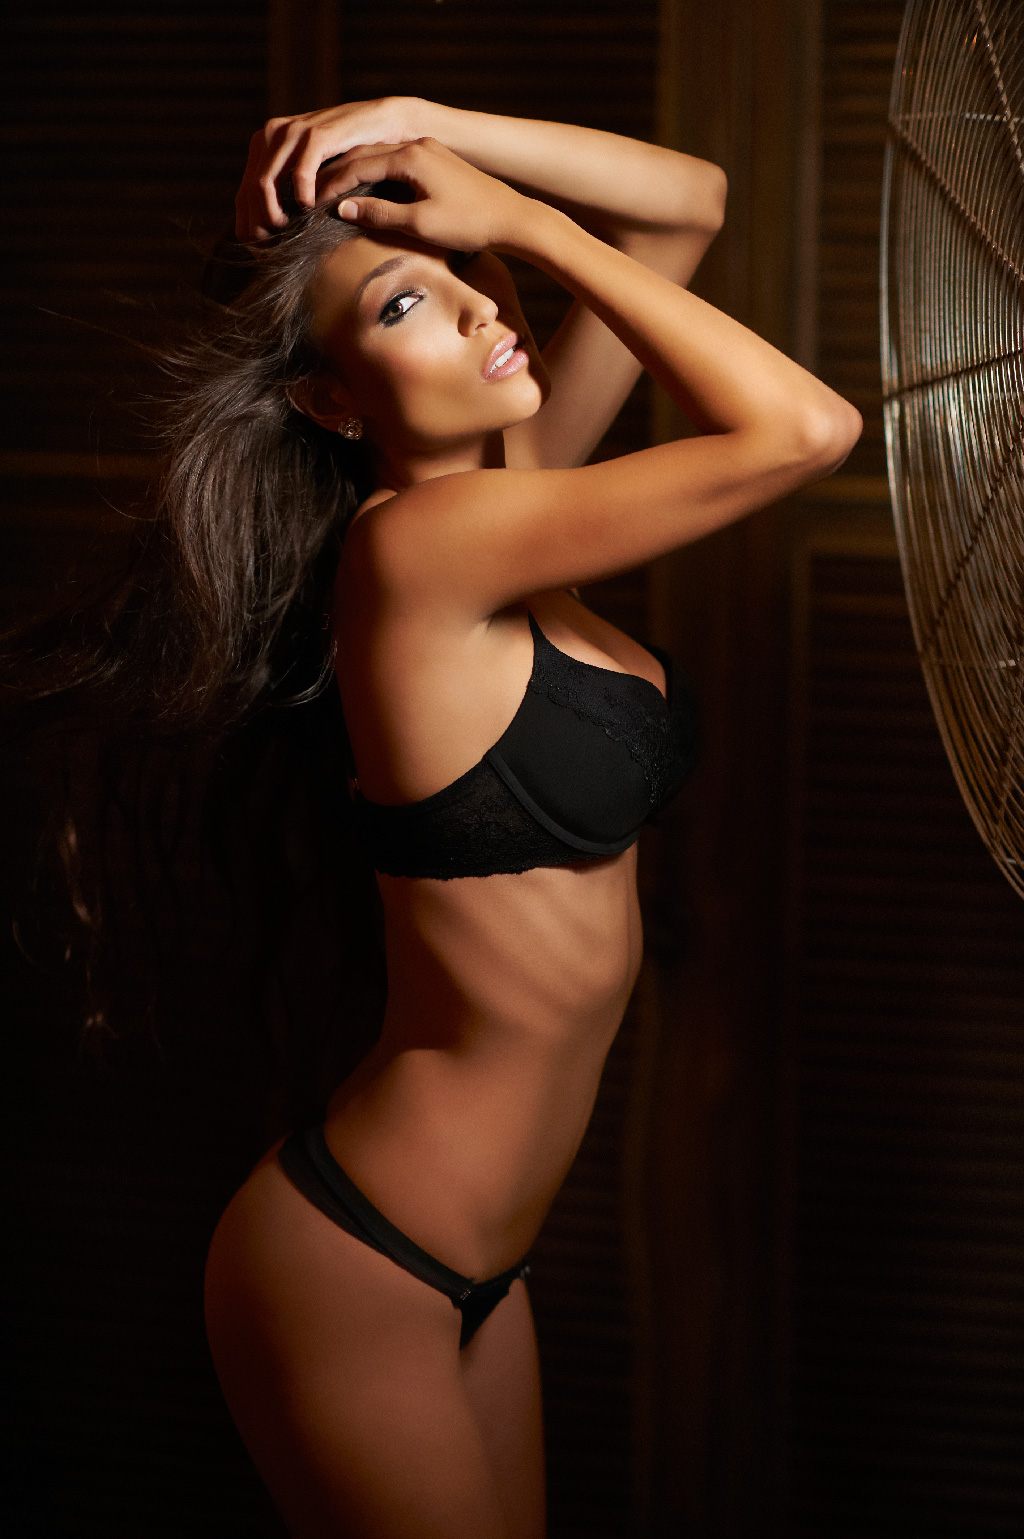 Creative Boudoir Shots using a Fan and Ice Light by Jerry Ghionis #3